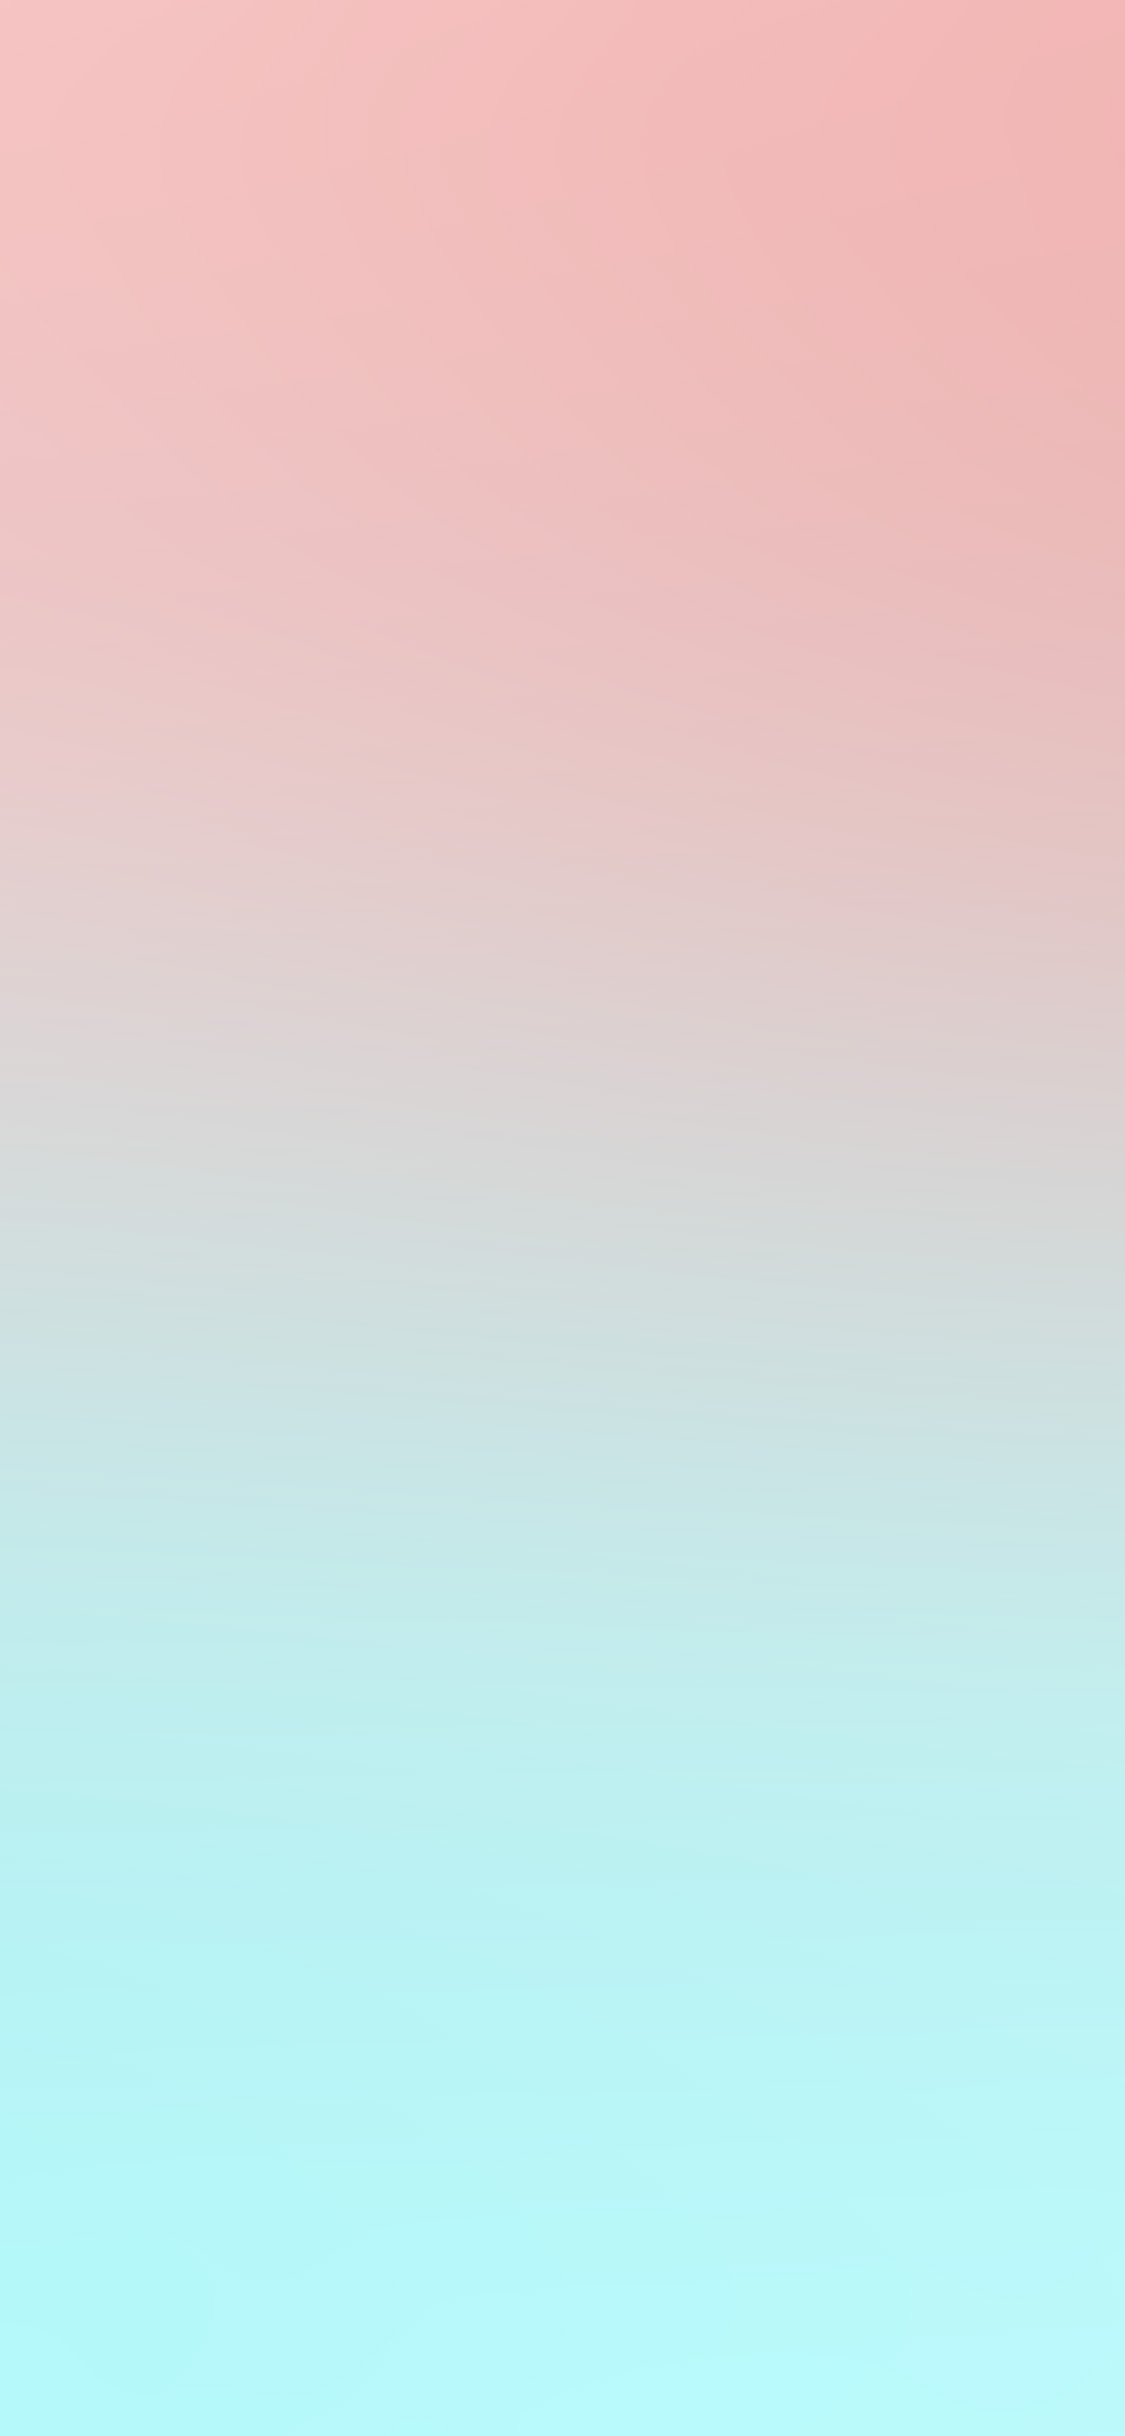 iPhonexpapers.com-Apple-iPhone-wallpaper-sm41-red-blue-soft-pastel-blur-gradation